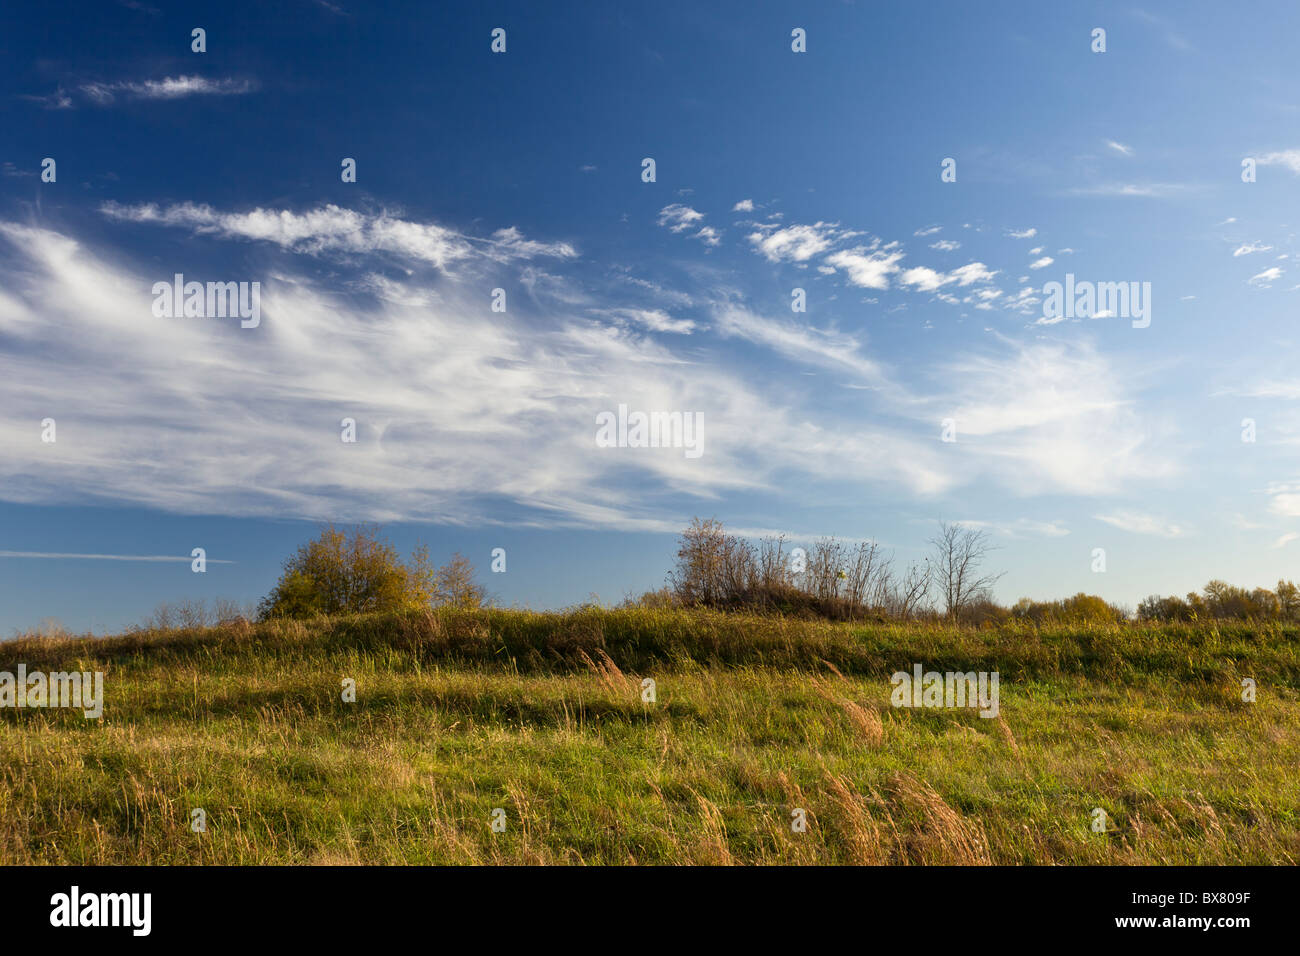 Native American earthen mounds at Spiro Mounds Archeological Site in Oklahoma, USA. - Stock Image